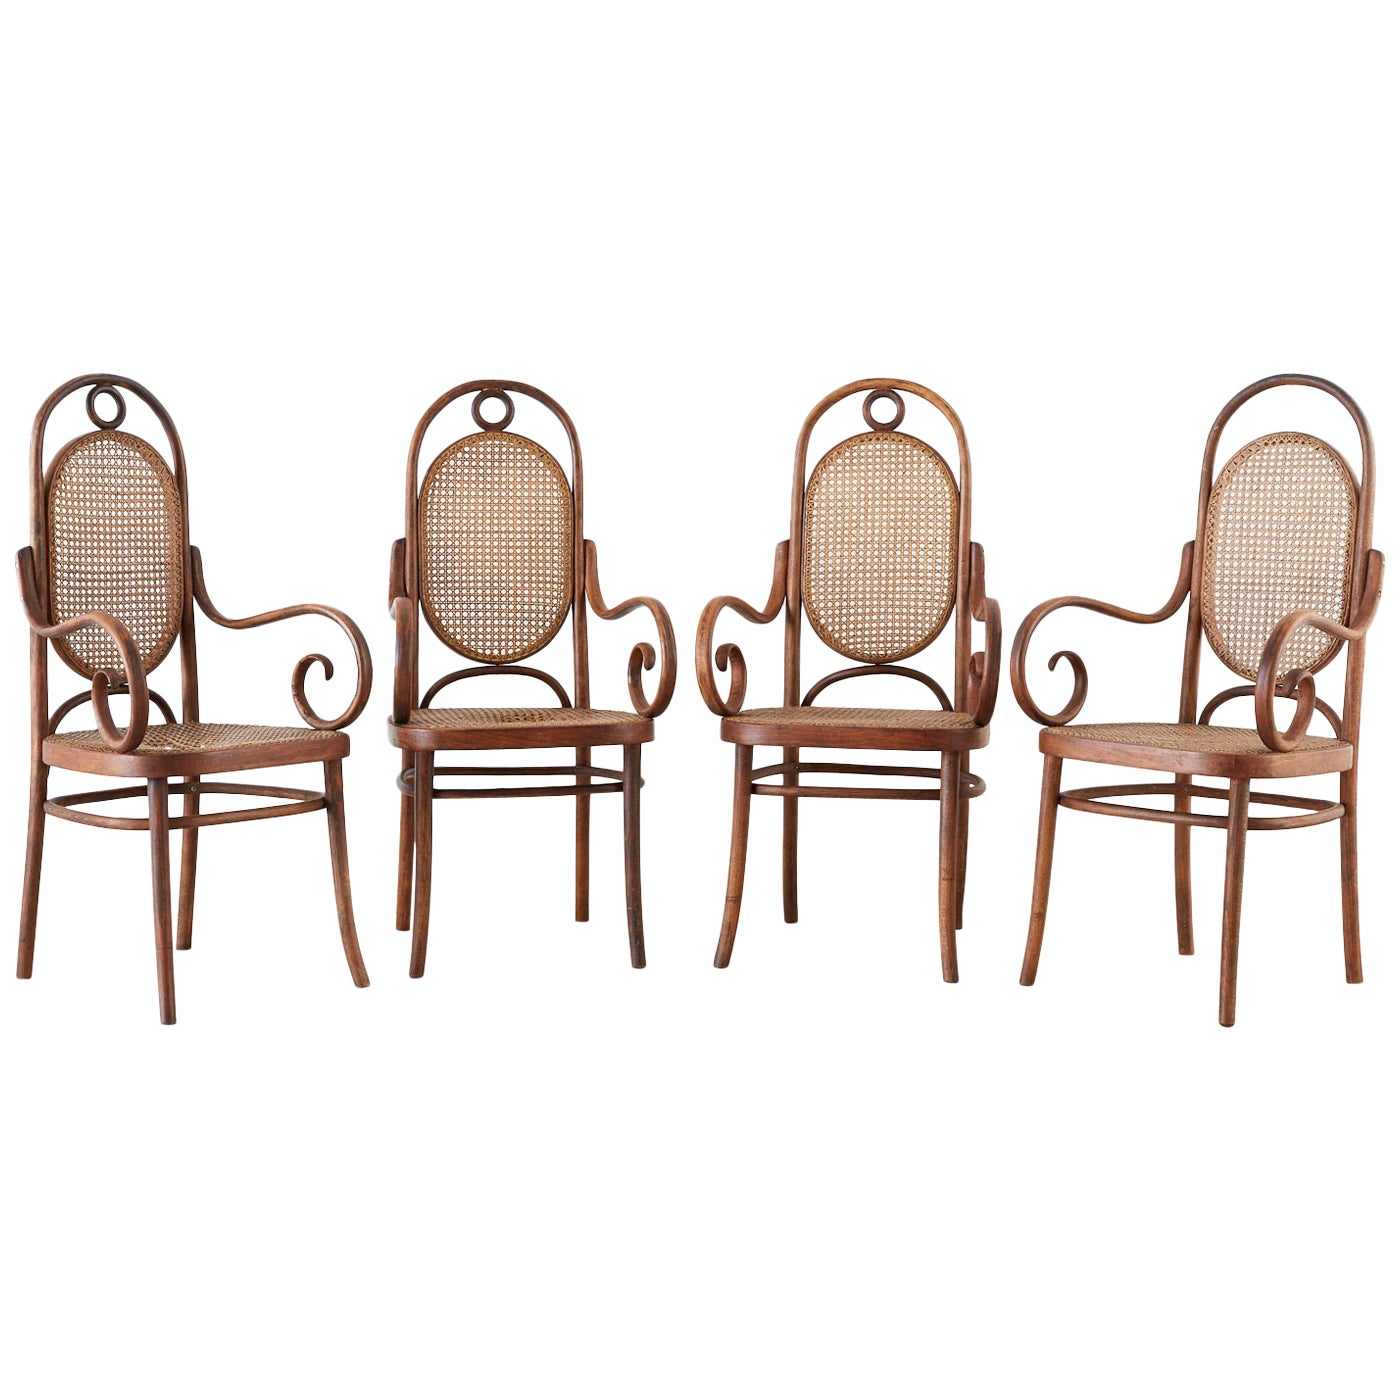 Set of Four Thonet No. 17 Bentwood and Cane Armchairs